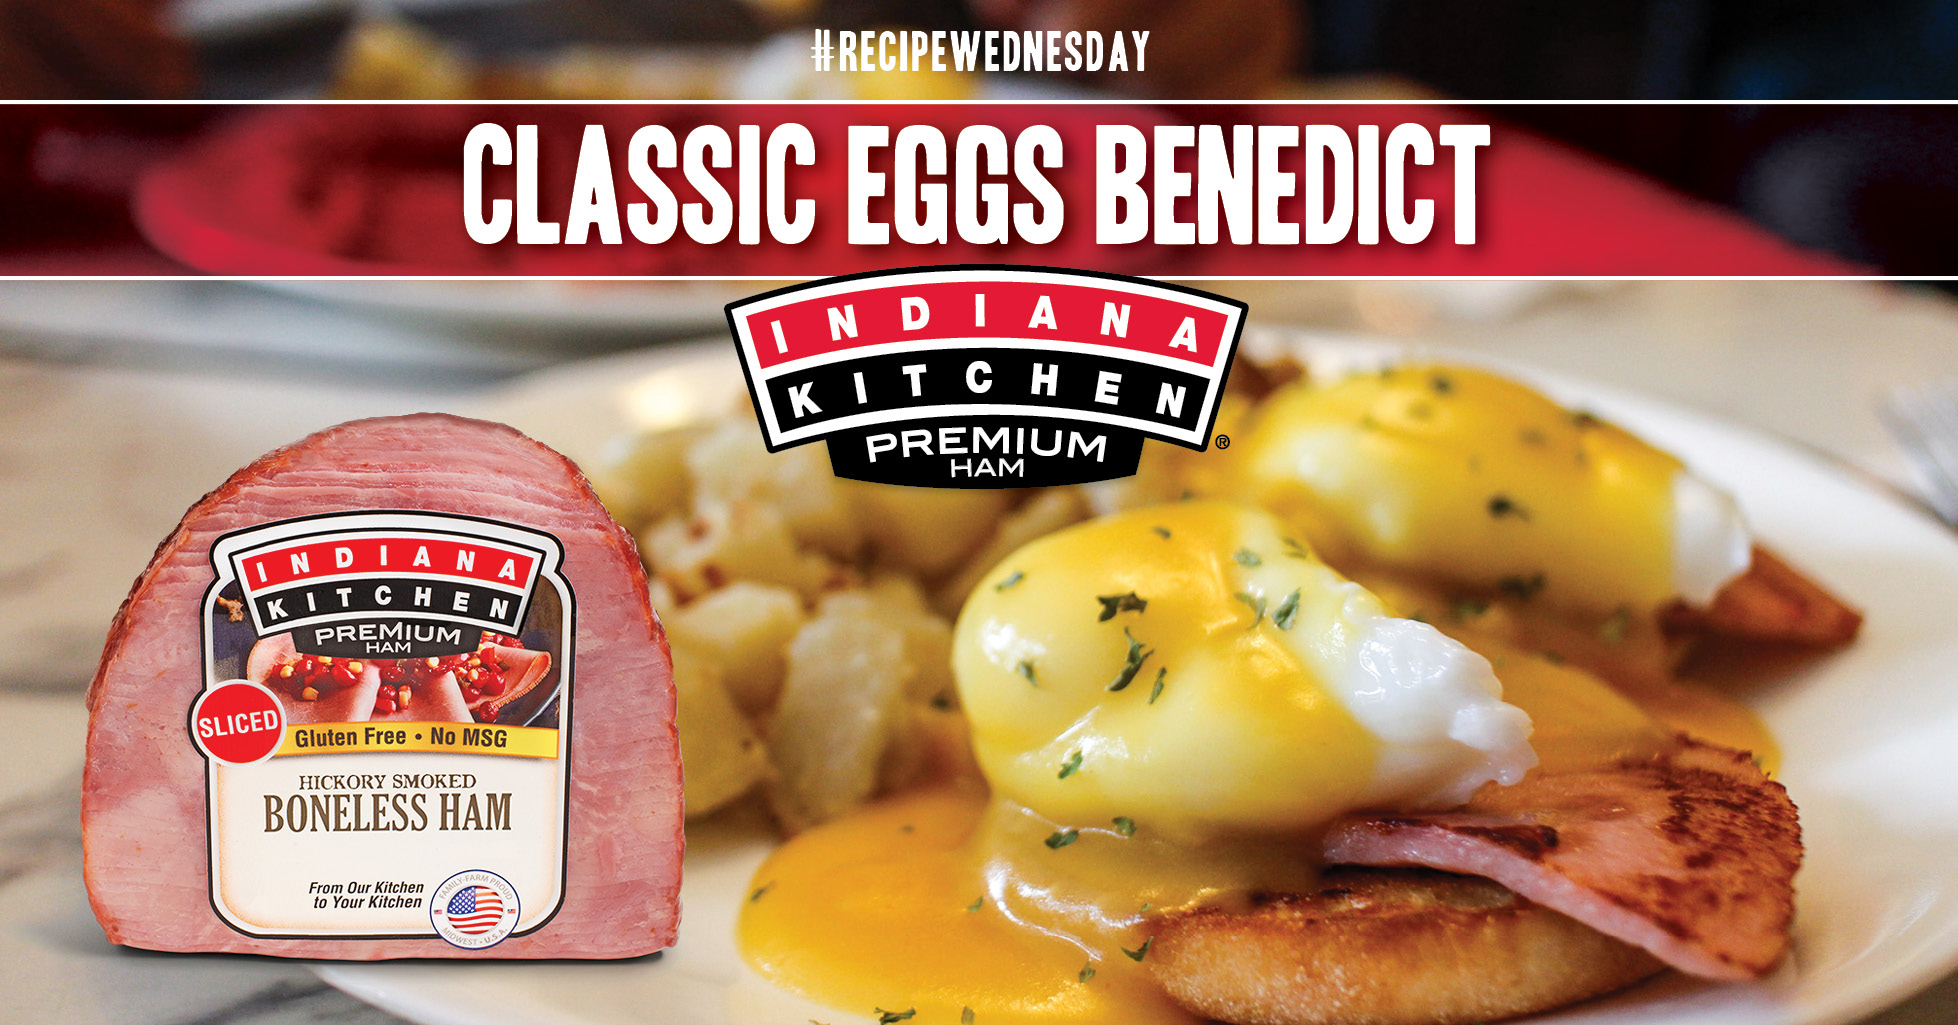 Classic Eggs Benedict Featuring Indiana Kitchen Ham